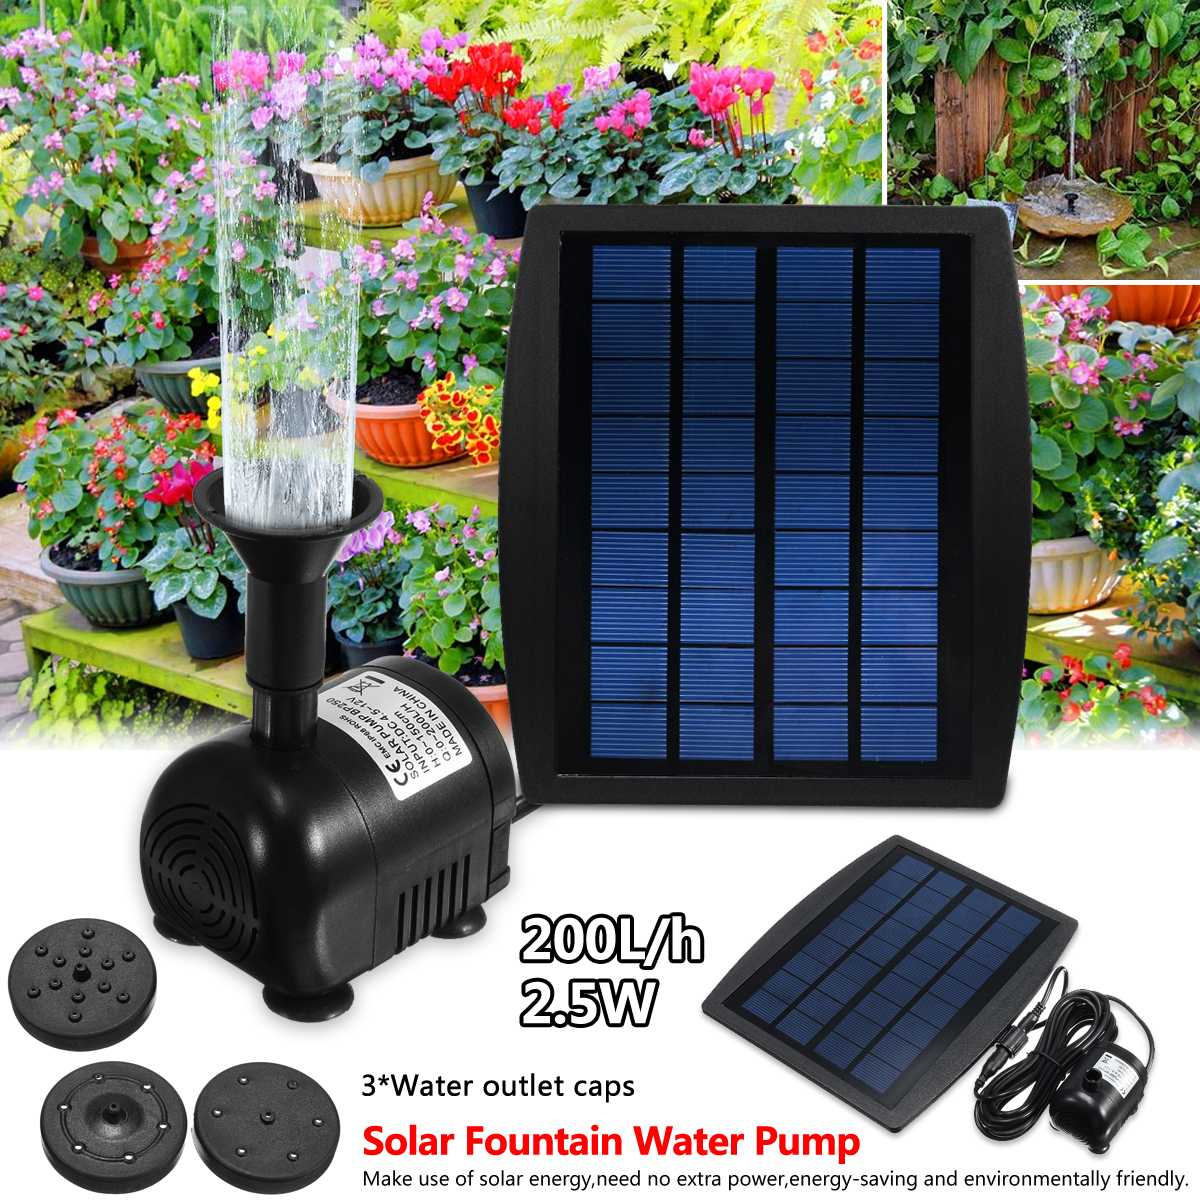 Solar Fountain Pump Us 24 54 46 Off 2 5w Solar Panel Floating Fountain Pump Kit Waterfall Outdoor Water Bird Bath In Pumps From Home Improvement On Aliexpress